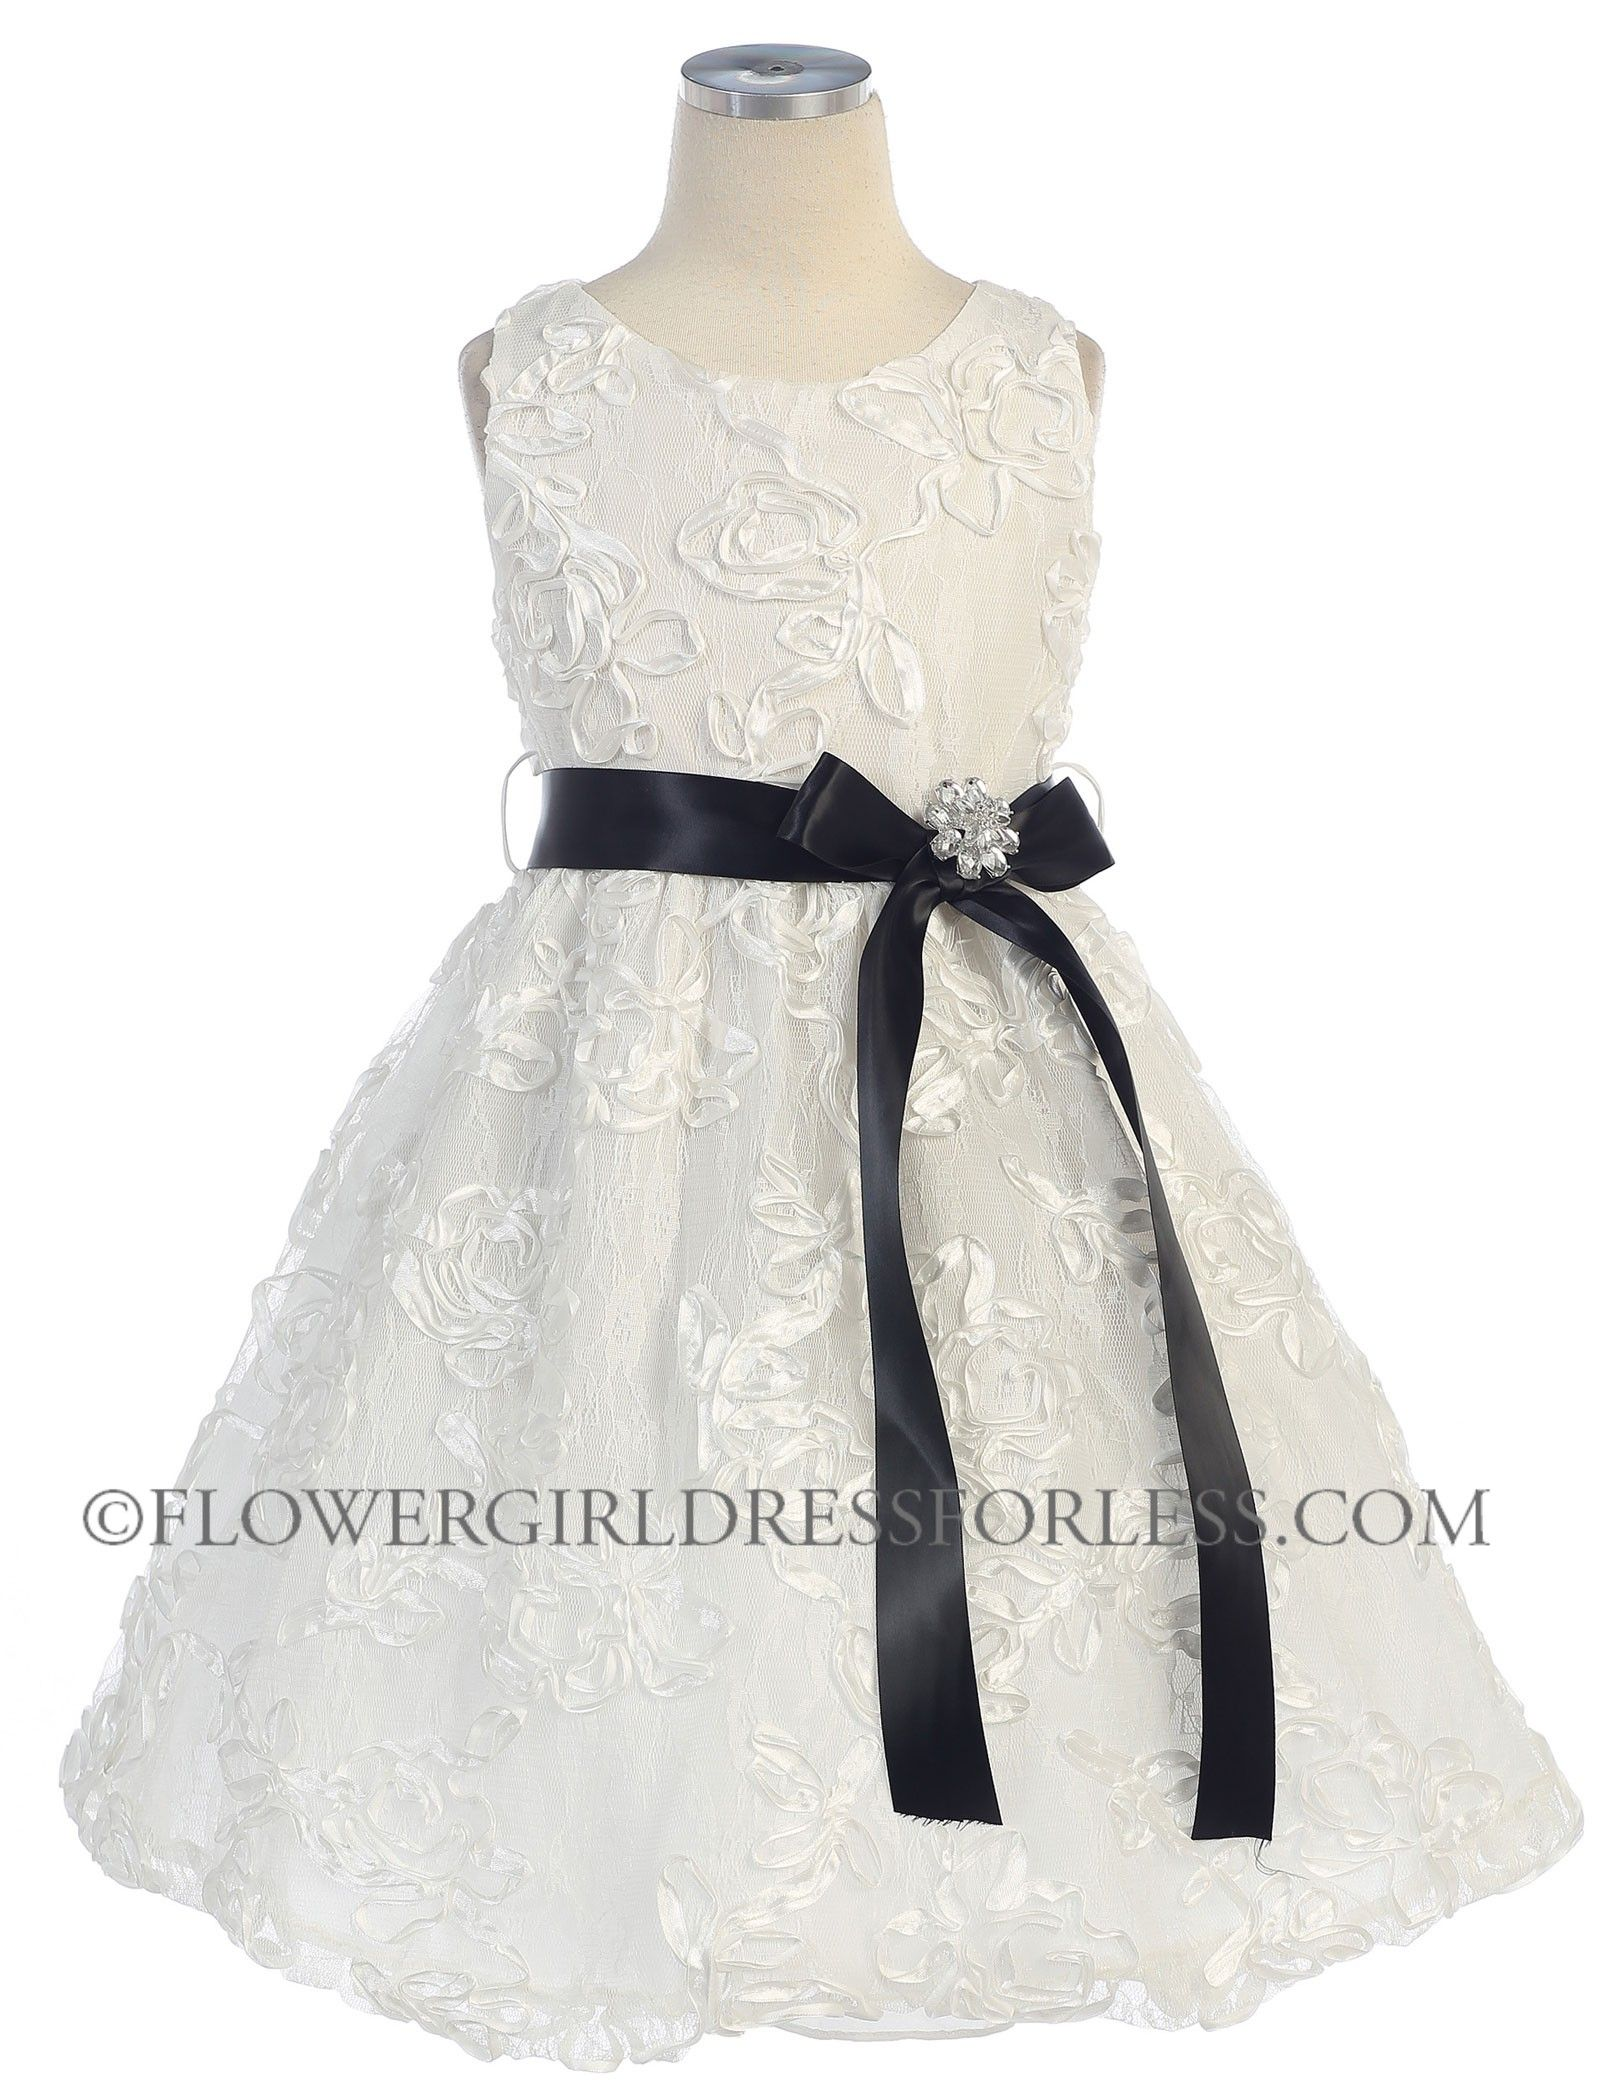 Girls dress style off white embroidered lace dress with satin